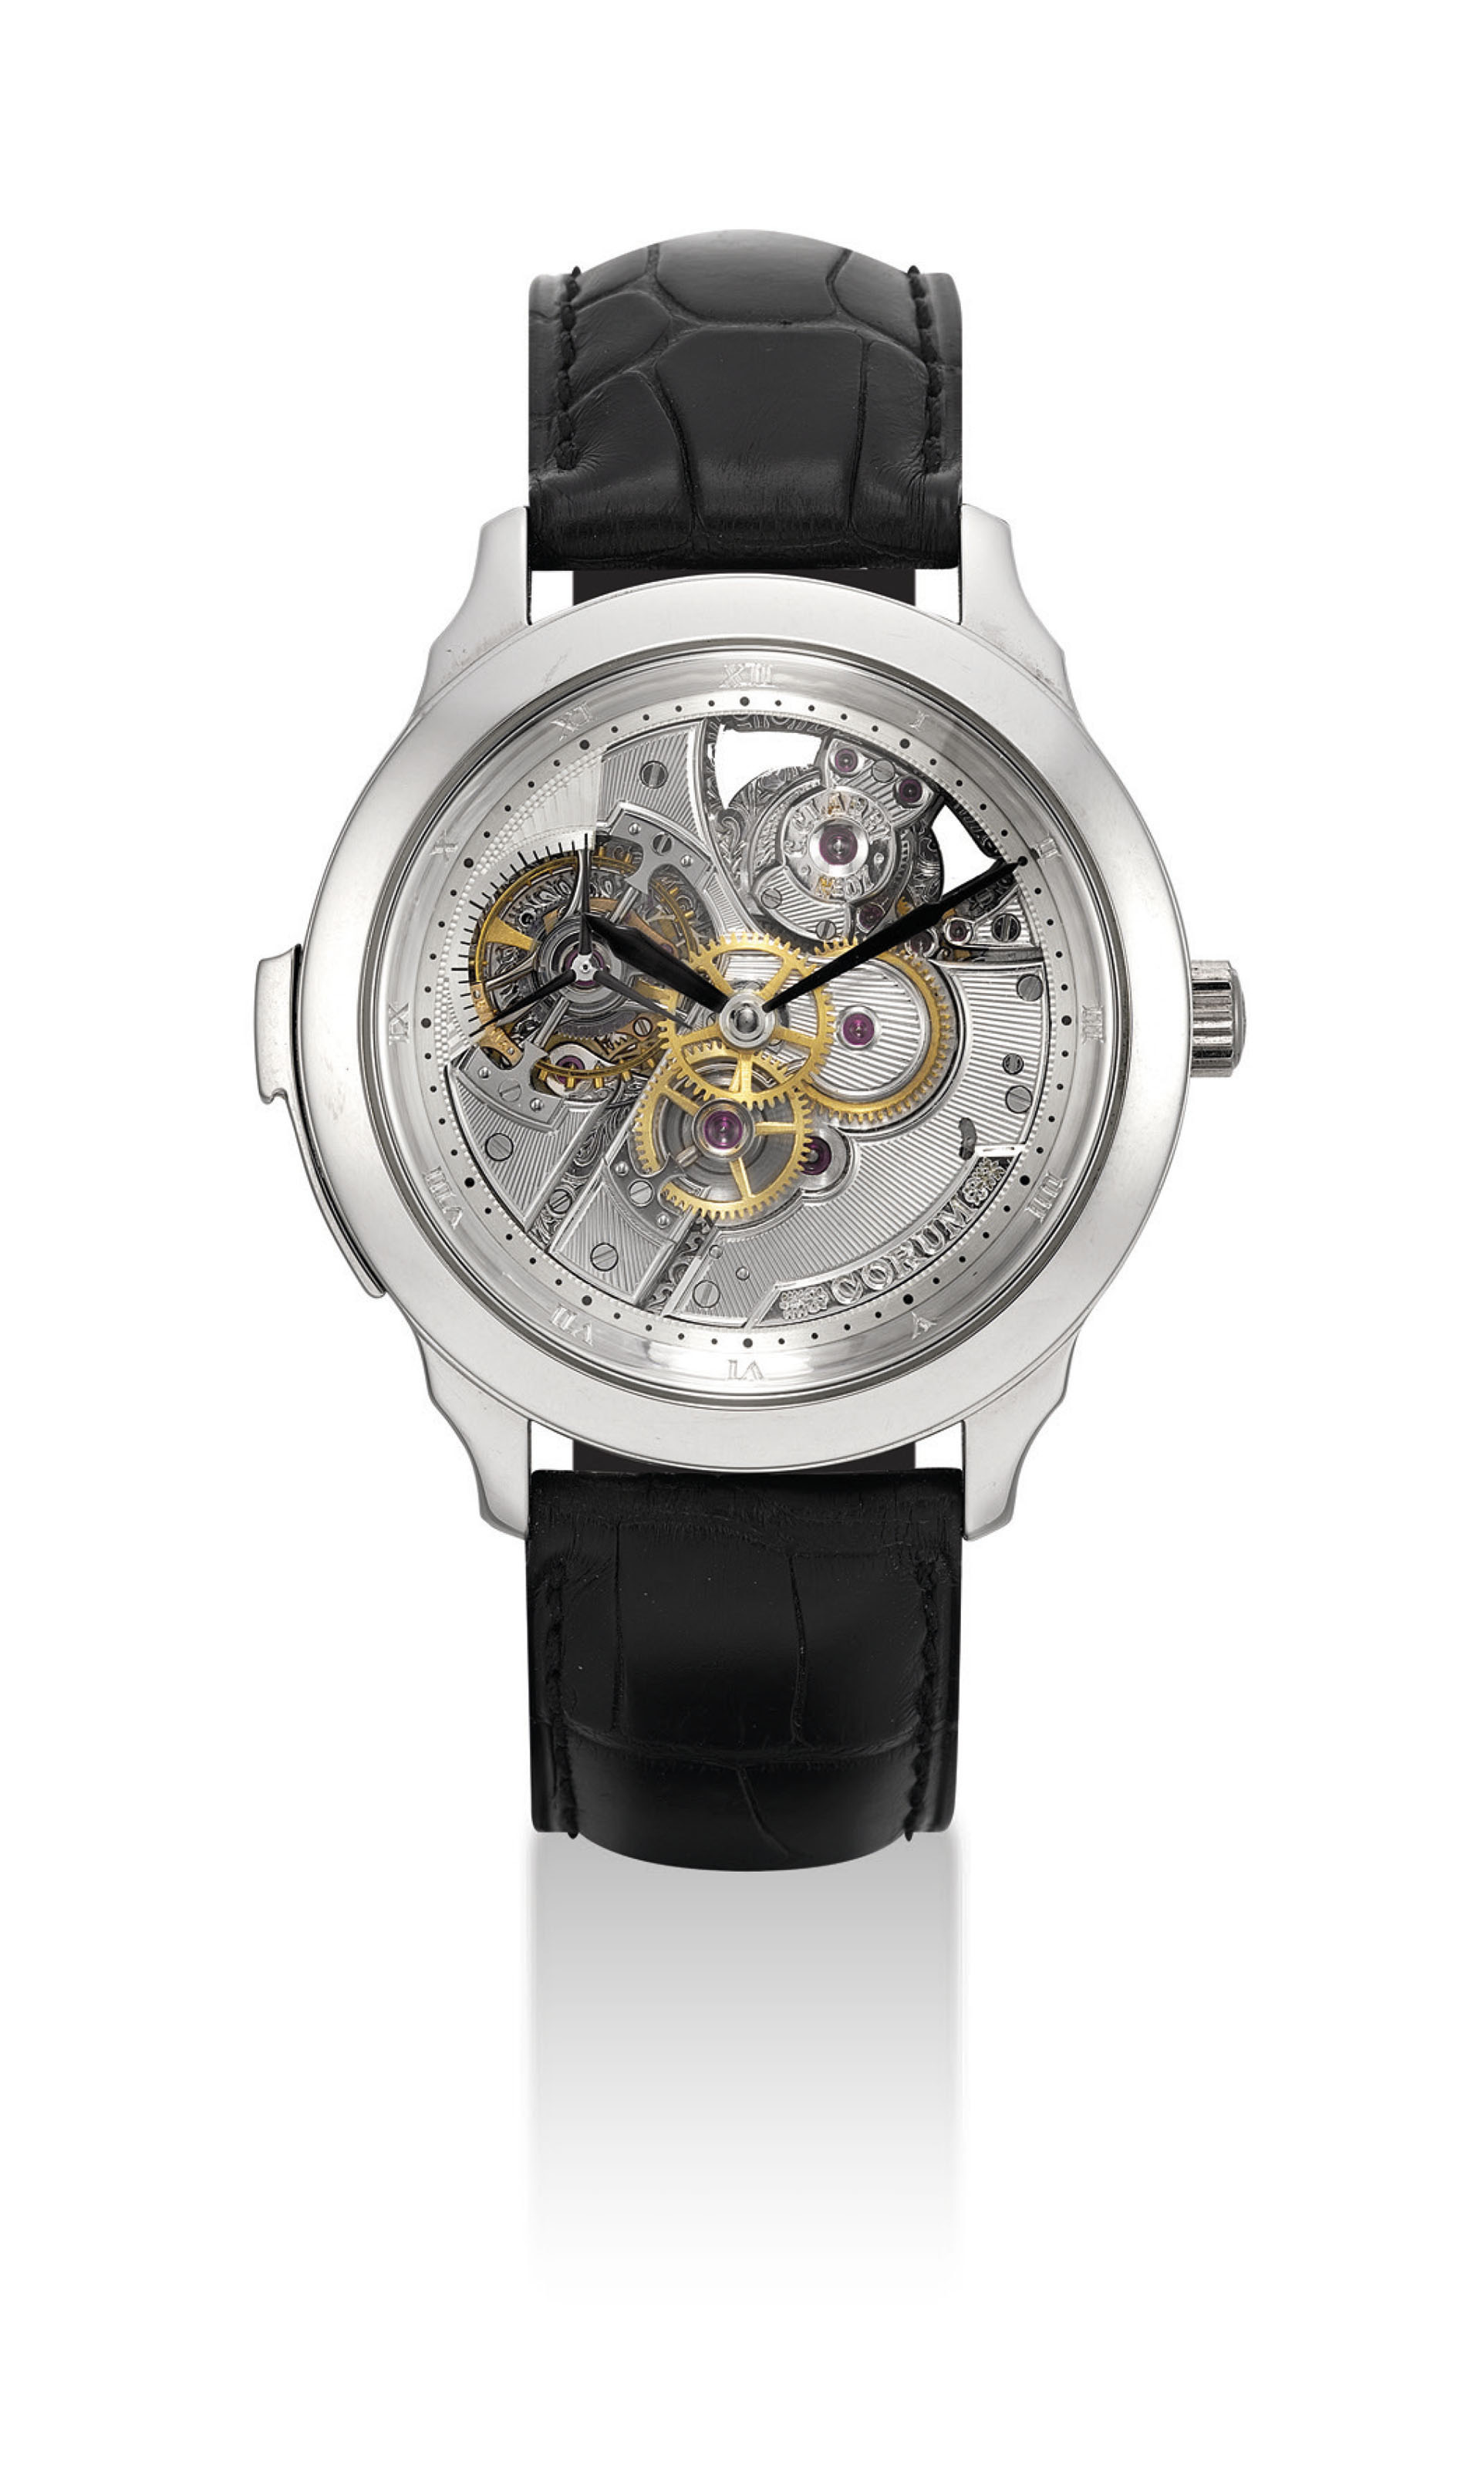 CORUM. A FINE AND EXTREMELY RARE PLATINUM LIMITED EDITION SEMI-SKELETONISED MINUTE REPEATING WRISTWATCH WITH ONE MINUTE TOURBILLON MADE BY CHRISTOPHE CLARET